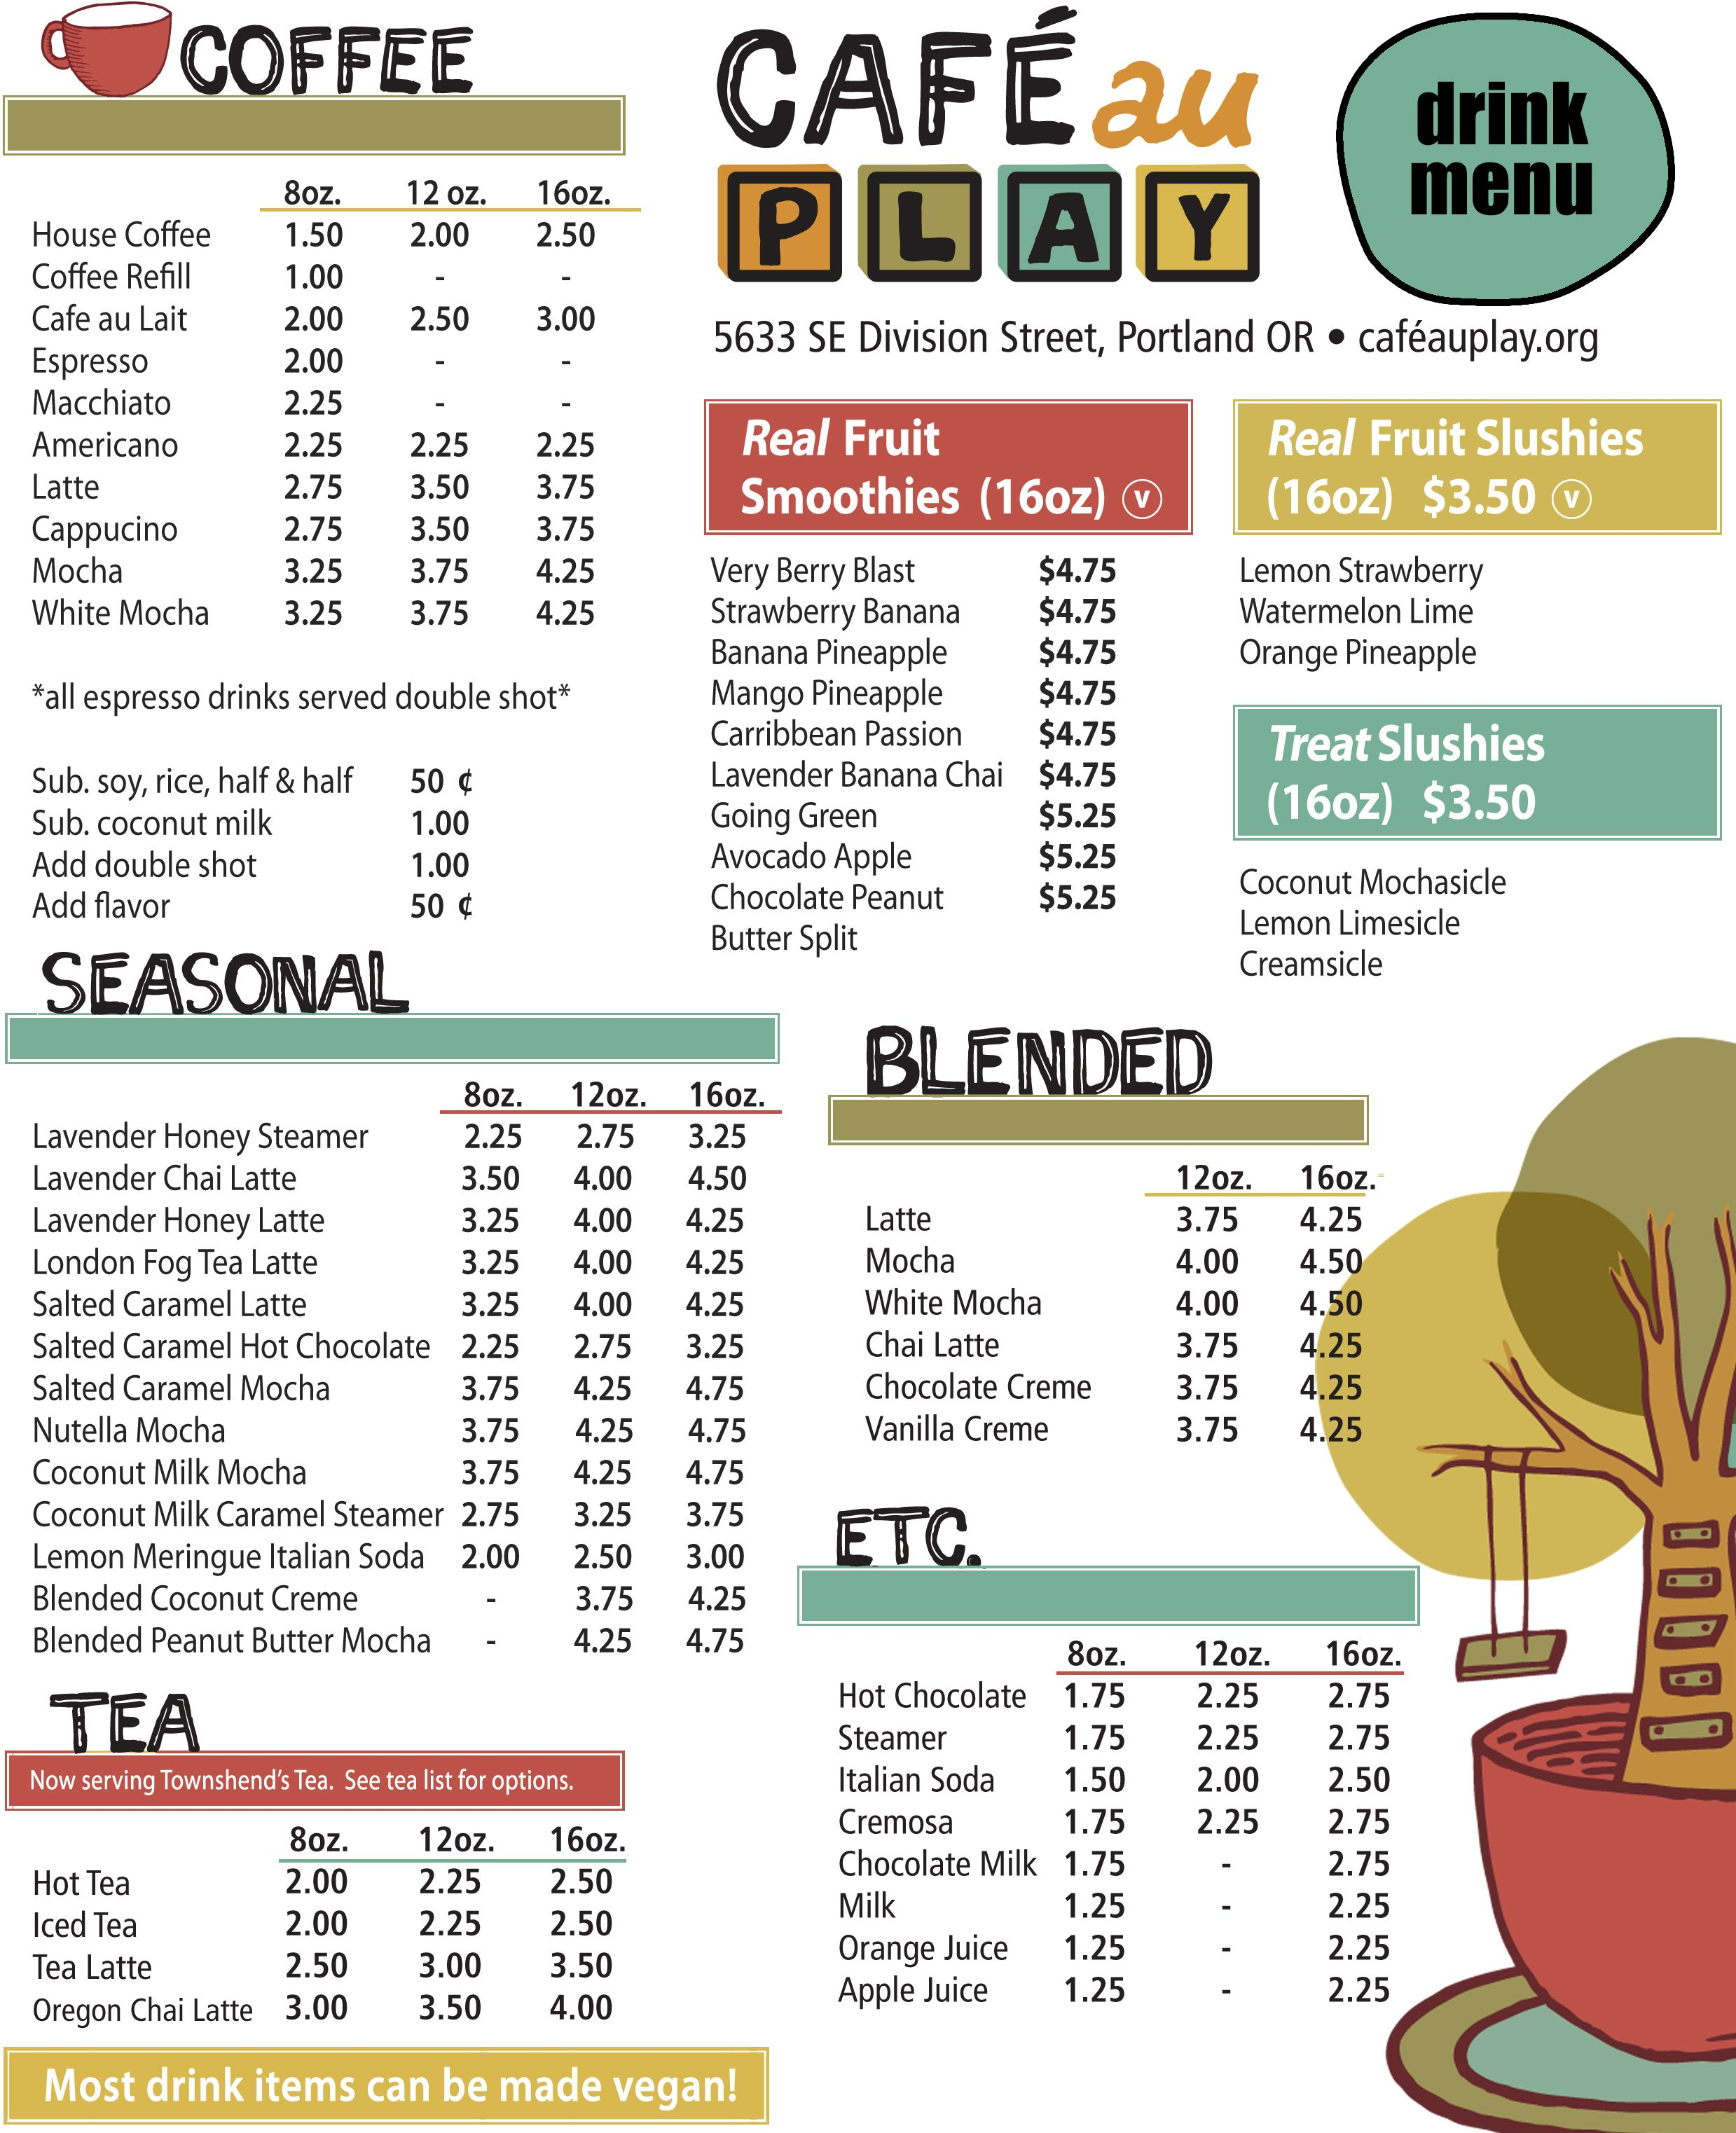 31 Awesome Cafe Menu Drinks Images